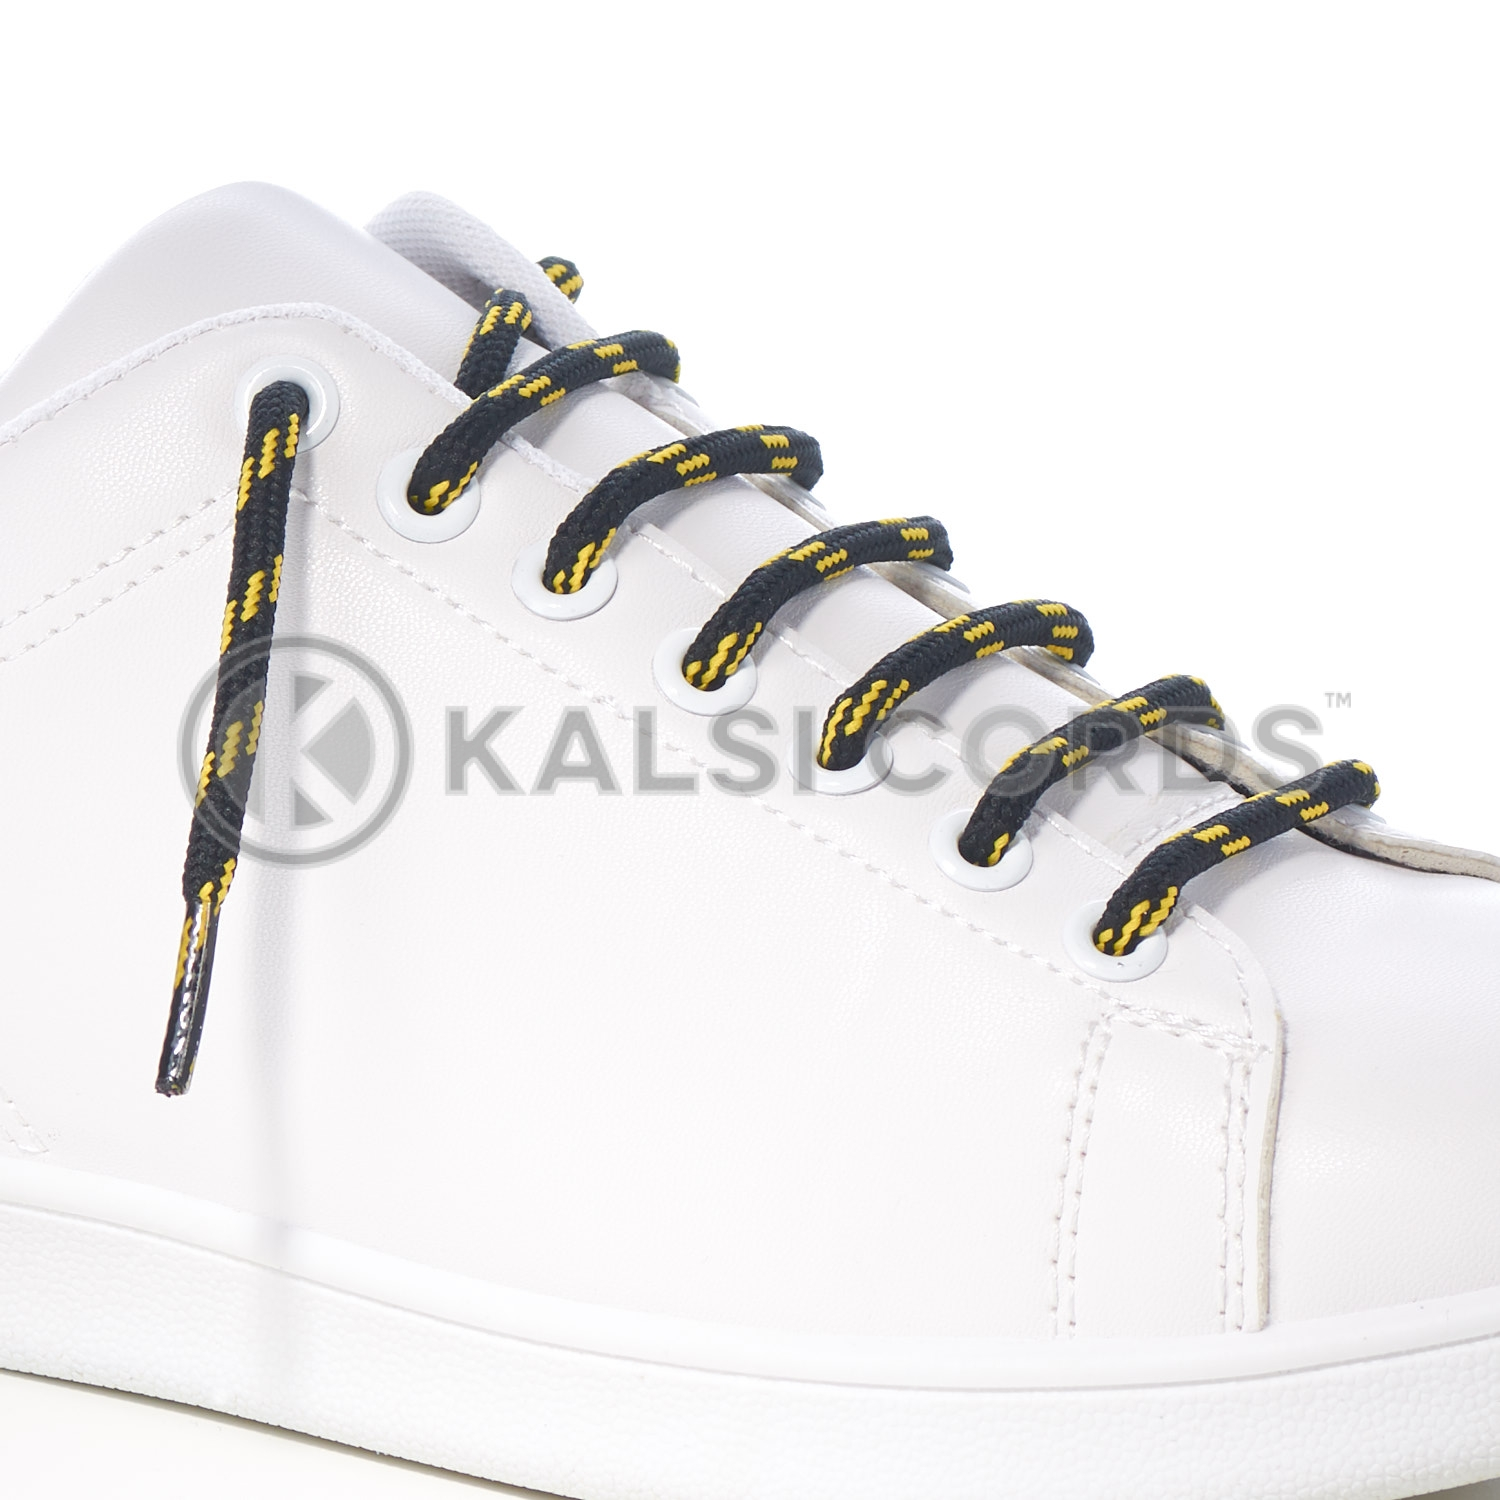 T621 5mm Round Cord Shoe Lace Black Yellow 4 Fleck Kids Trainers Adults Hiking Walking Boots Kalsi Cords